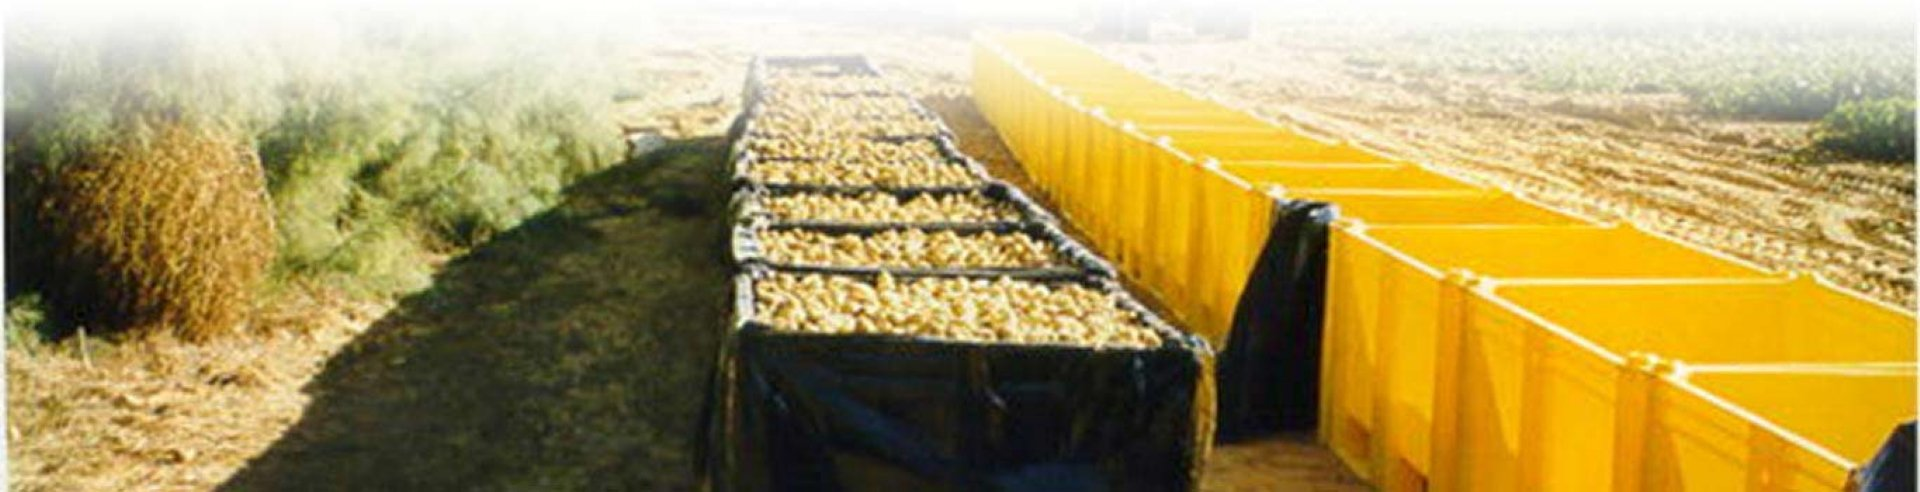 Plastic Dolav Boxes Filled With Potatoes In The Field